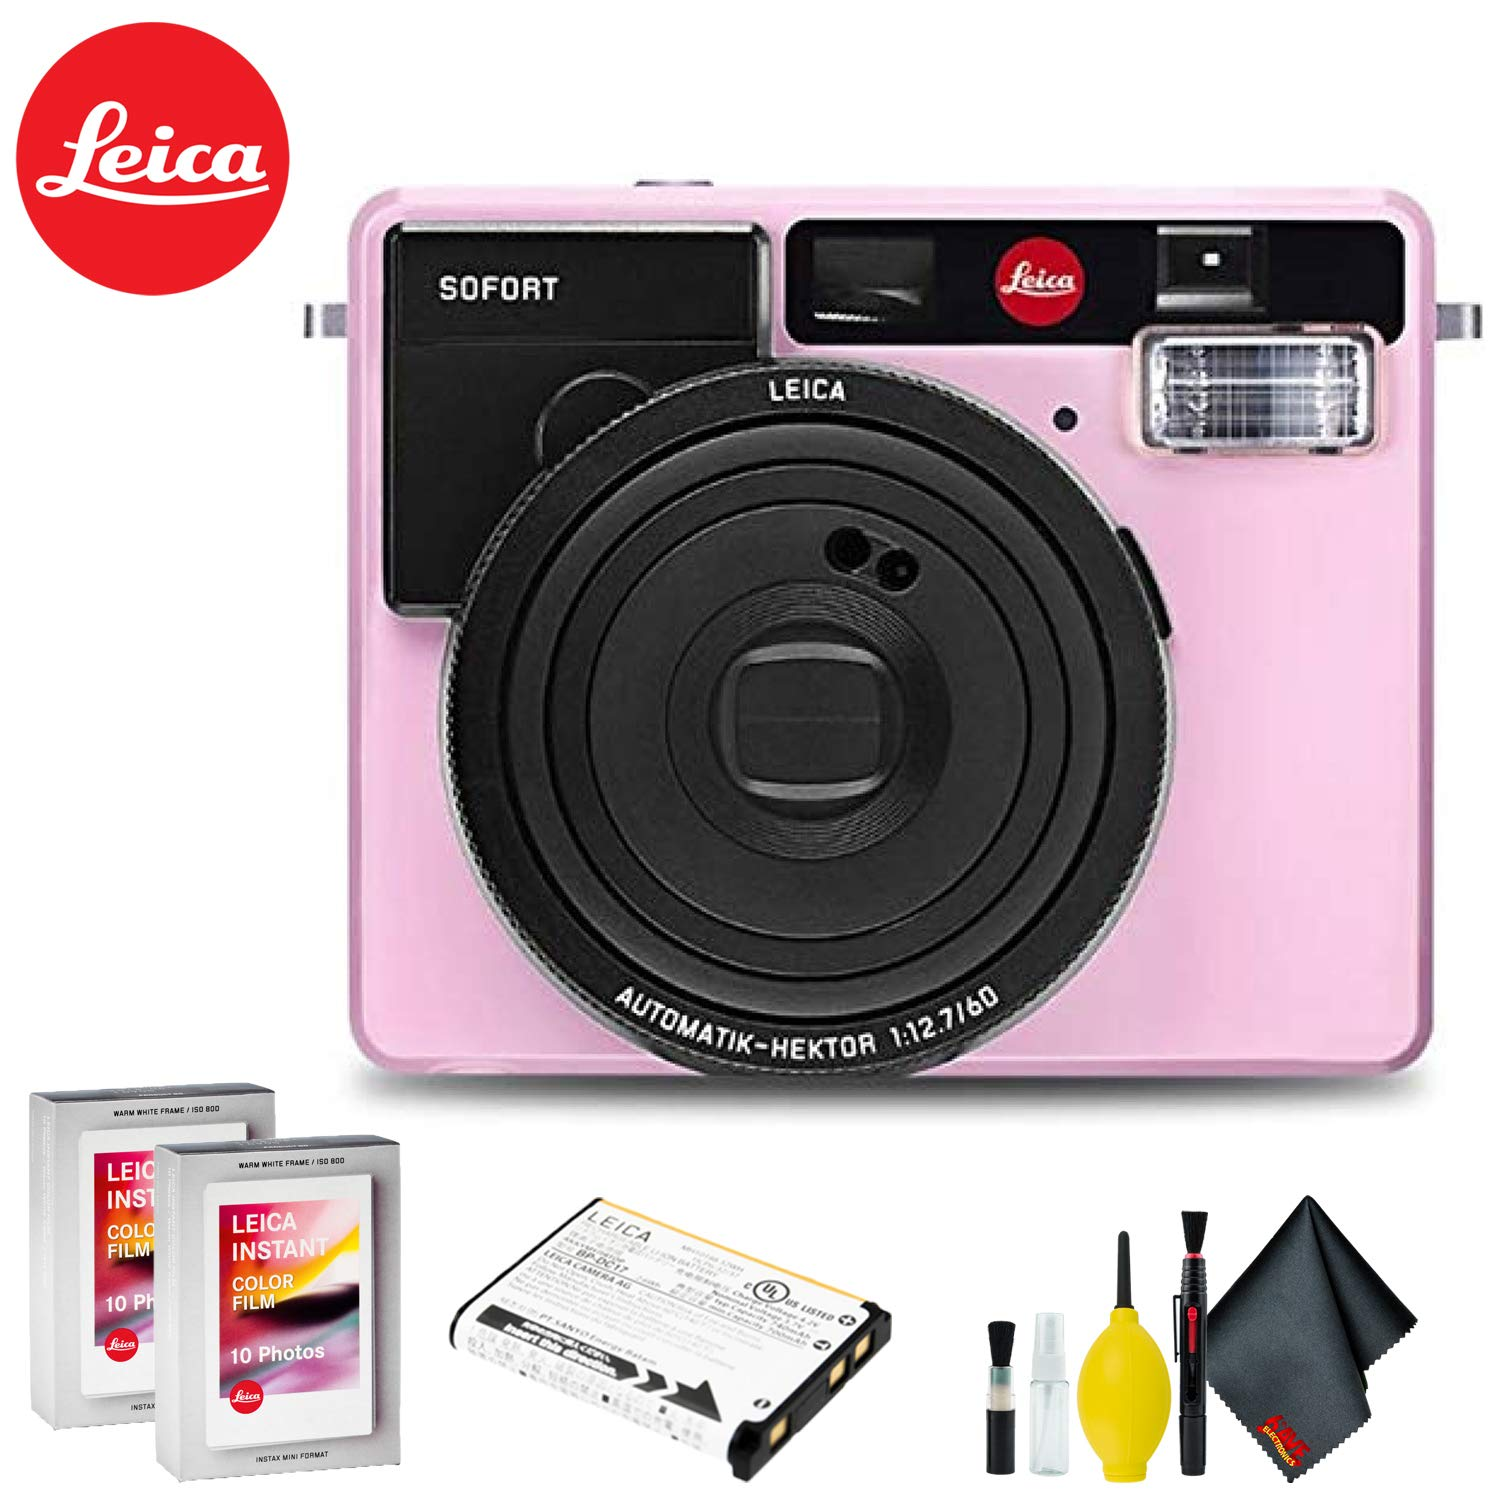 Leica Sofort Instant Film Camera (Pink) Ultimate Kit by Leica (Image #1)